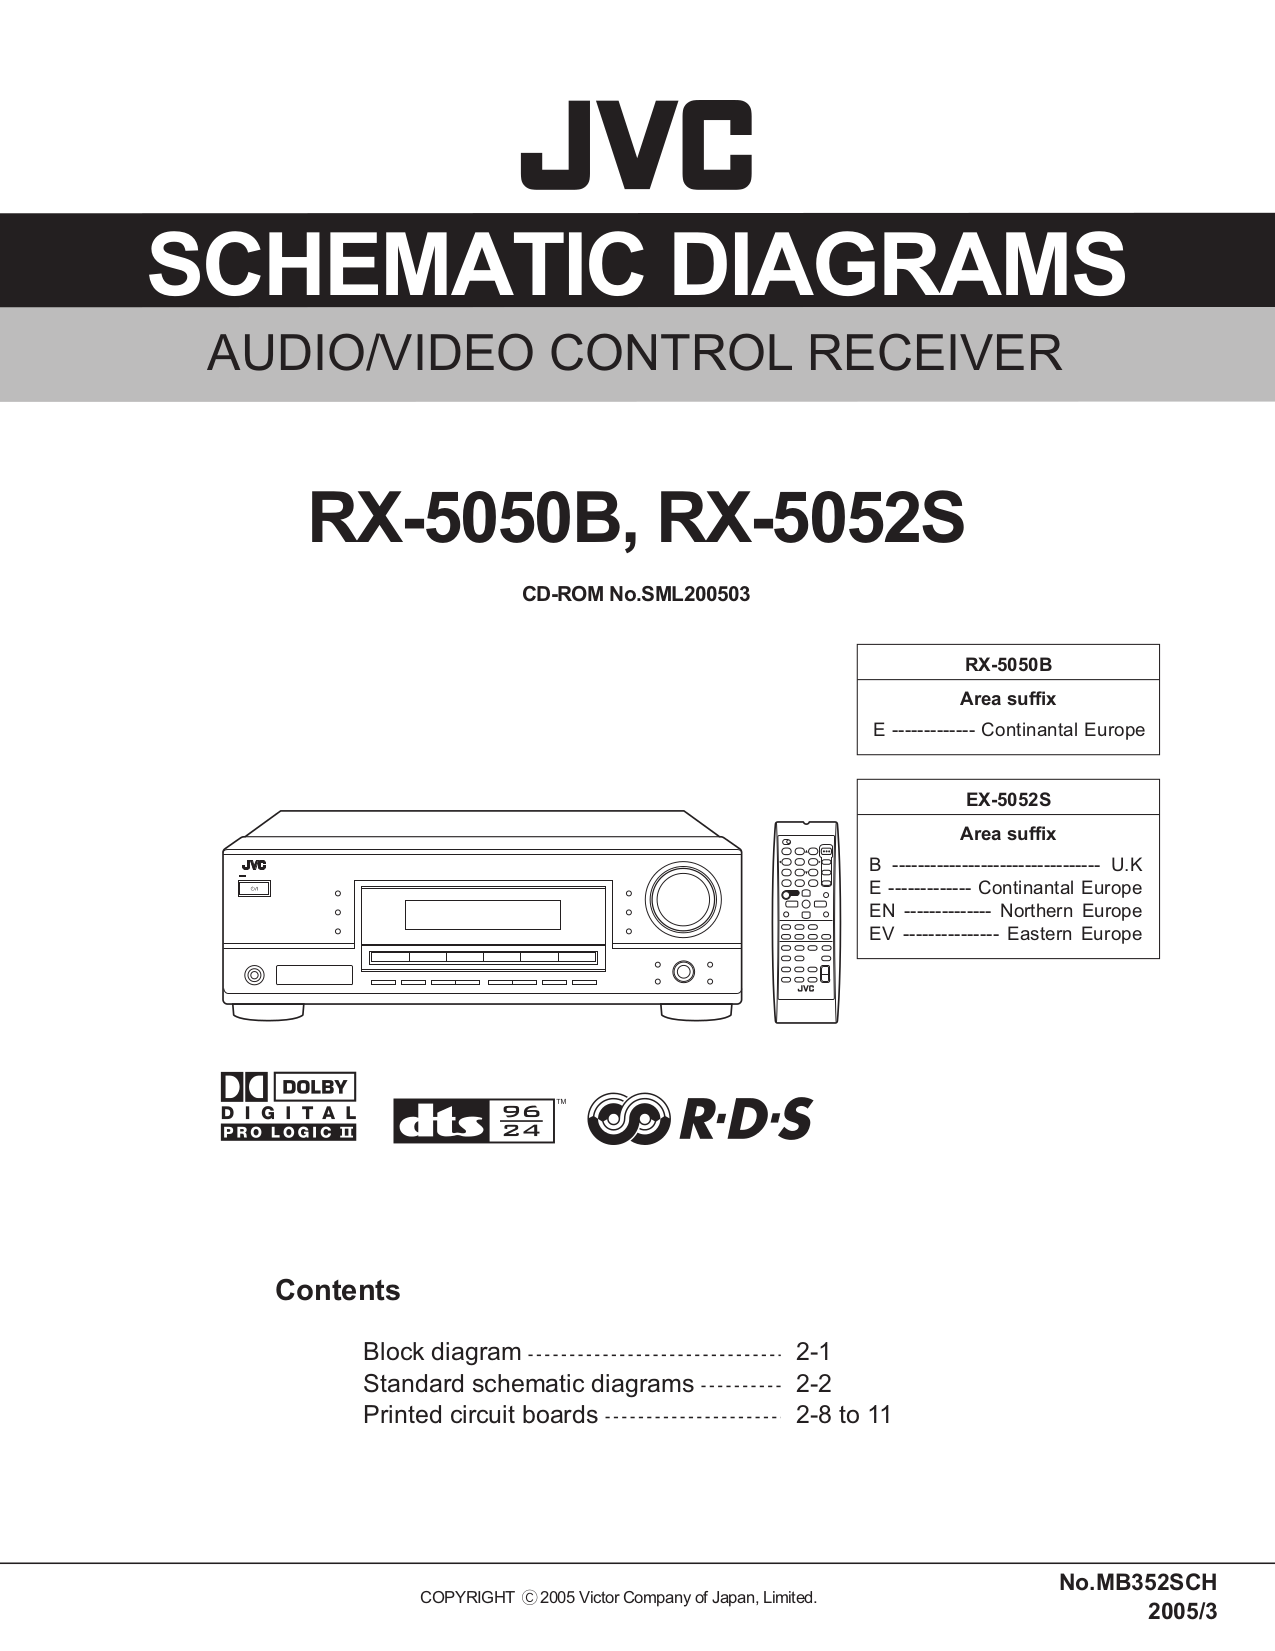 Download Free Pdf For Jvc Rx 5052s Receiver Manual Schematic Diagram